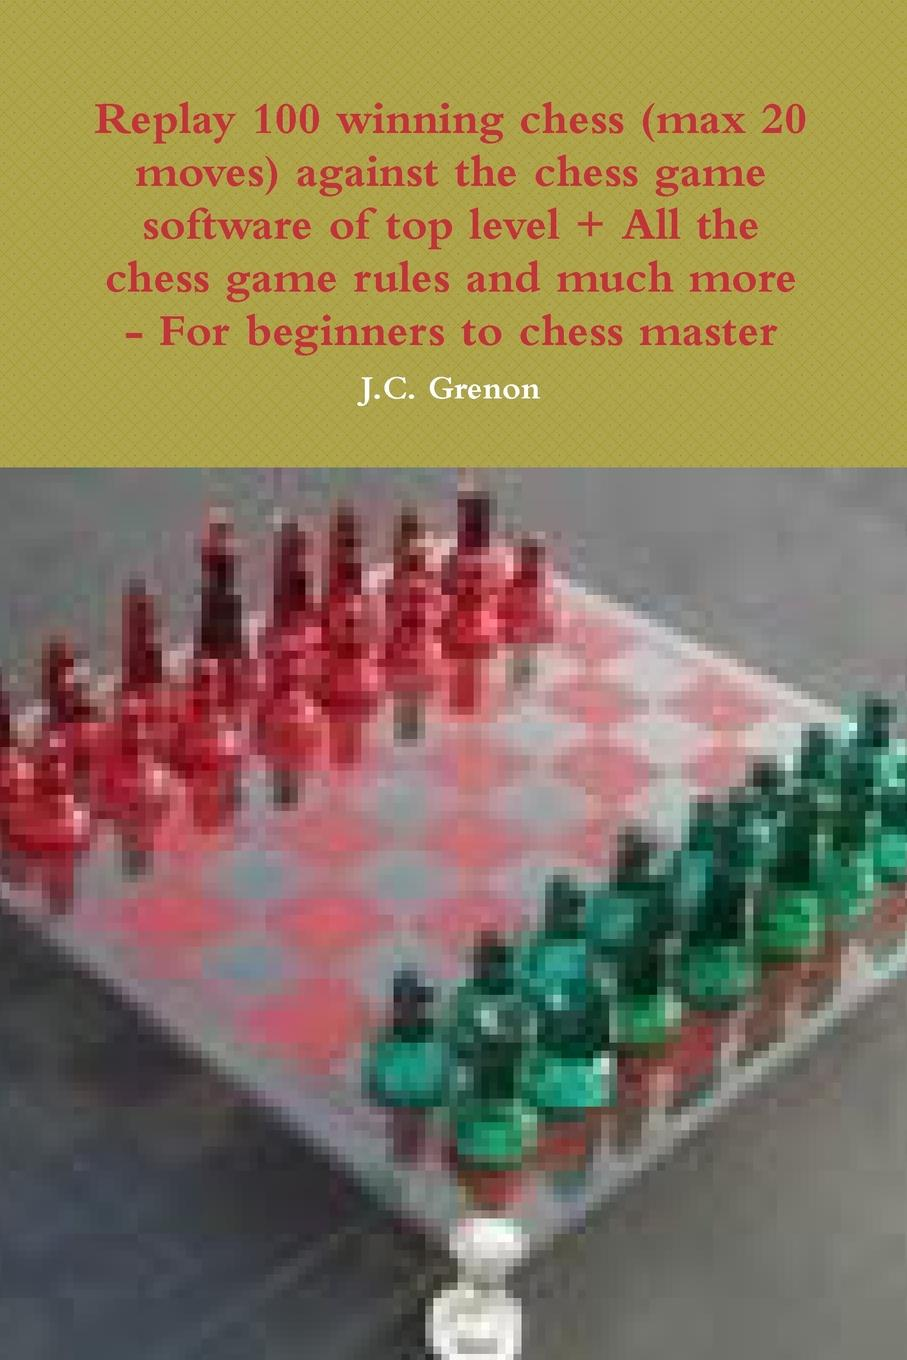 J.C. Grenon Replay 100 winning chess (max 20 moves) against the high chess software . All the chess rules and much more 100 chess studies lessons in the endgame на английском языке